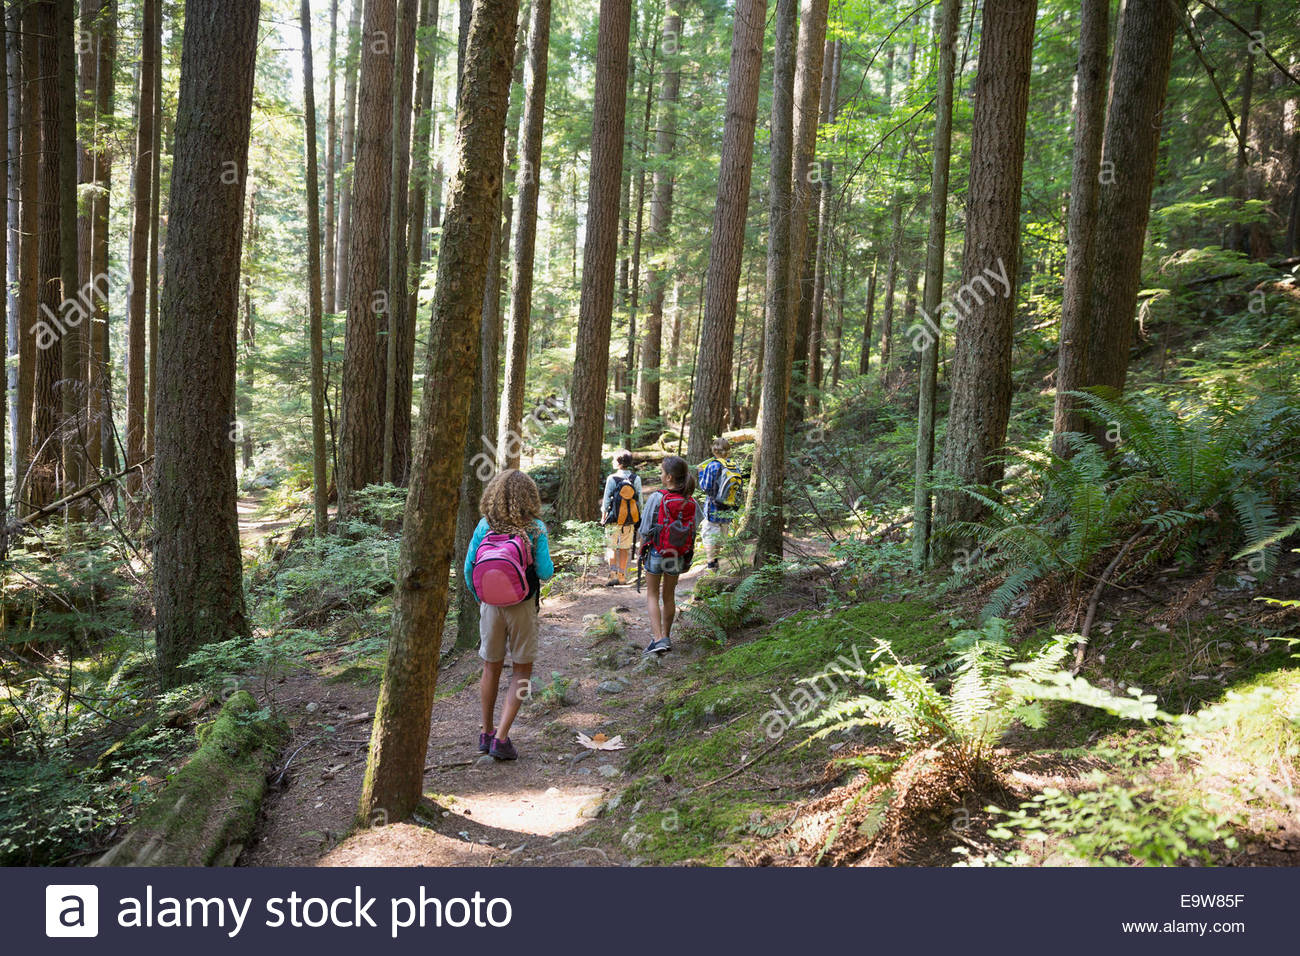 Teacher and children hiking on trail in woods - Stock Image